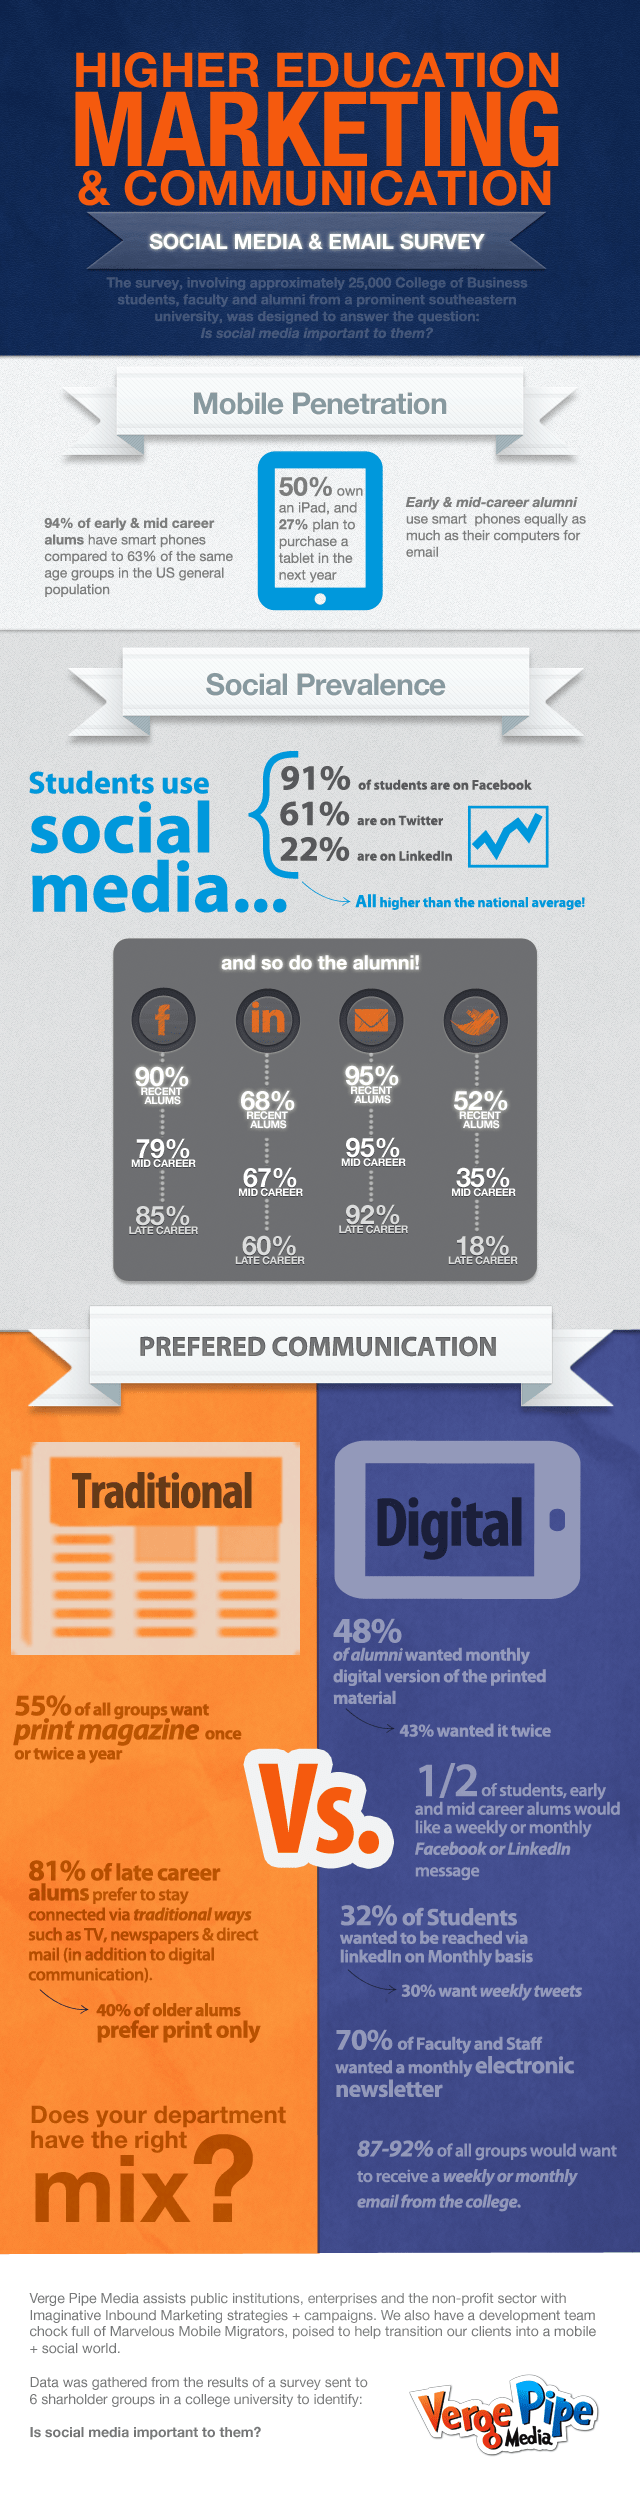 higher-education-marketing--communication_508e8e04b9c32